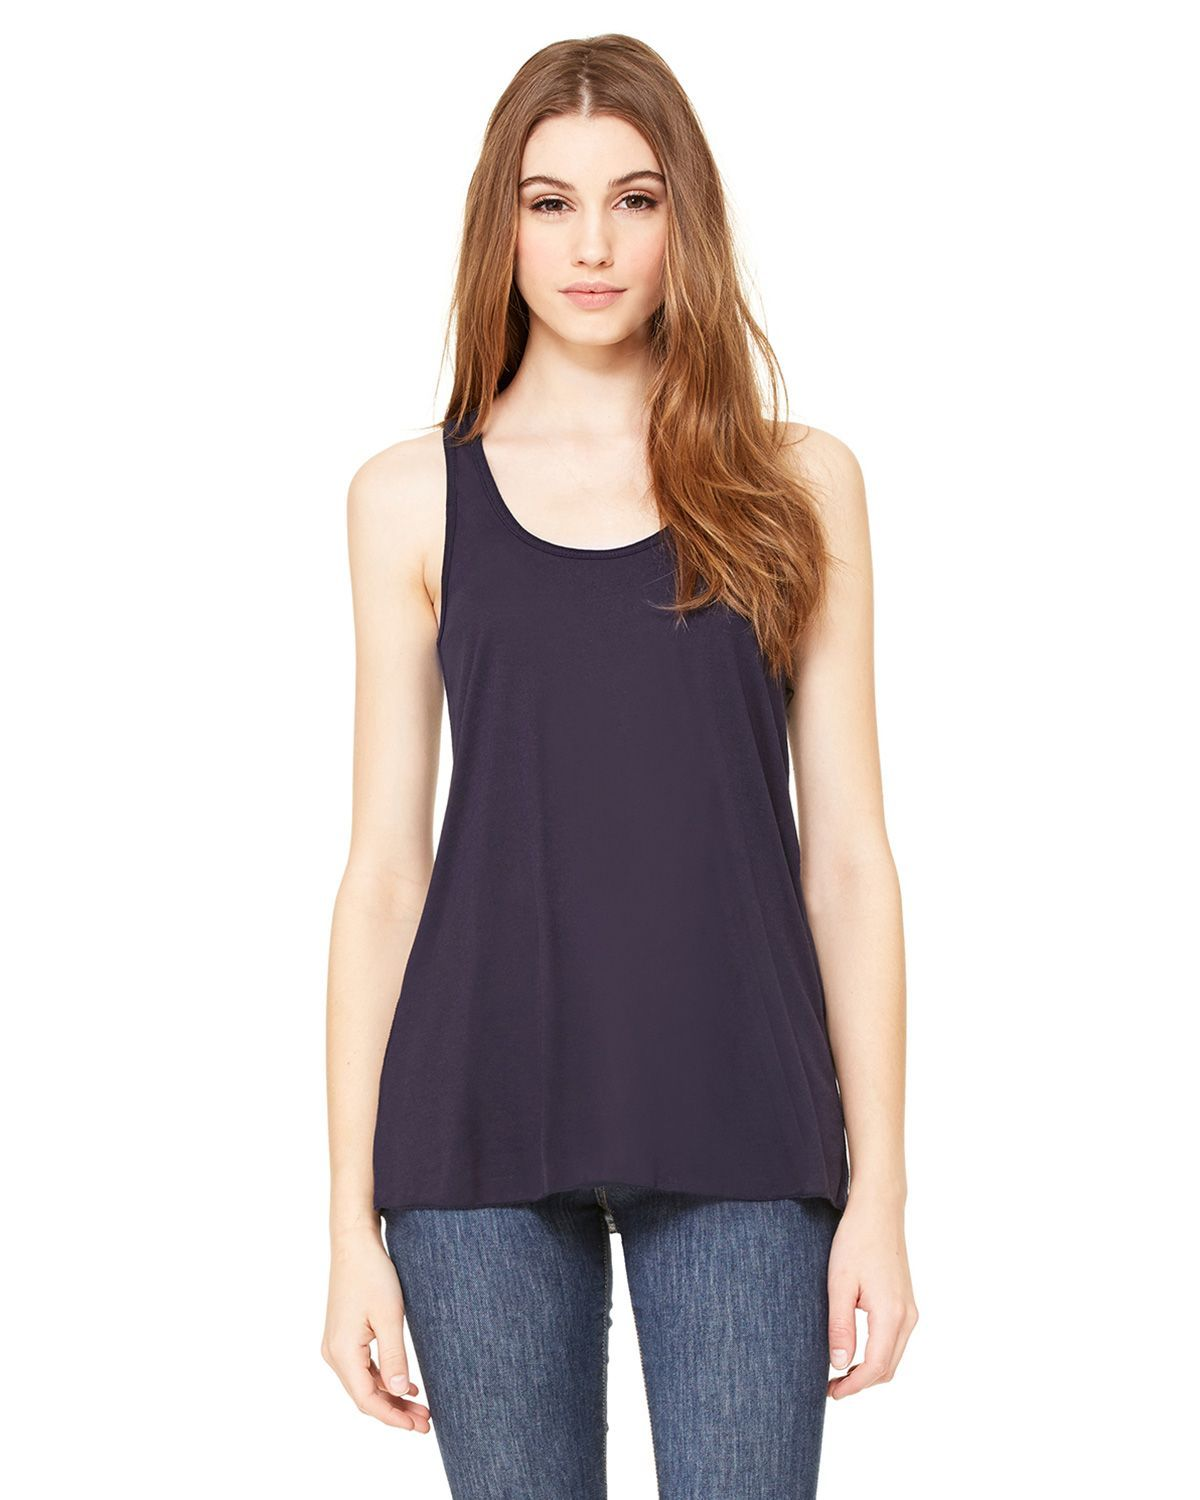 Bella + Canvas 8800 Women's Flowy Racerback Tank - Midnight - XS from Bella + Canvas